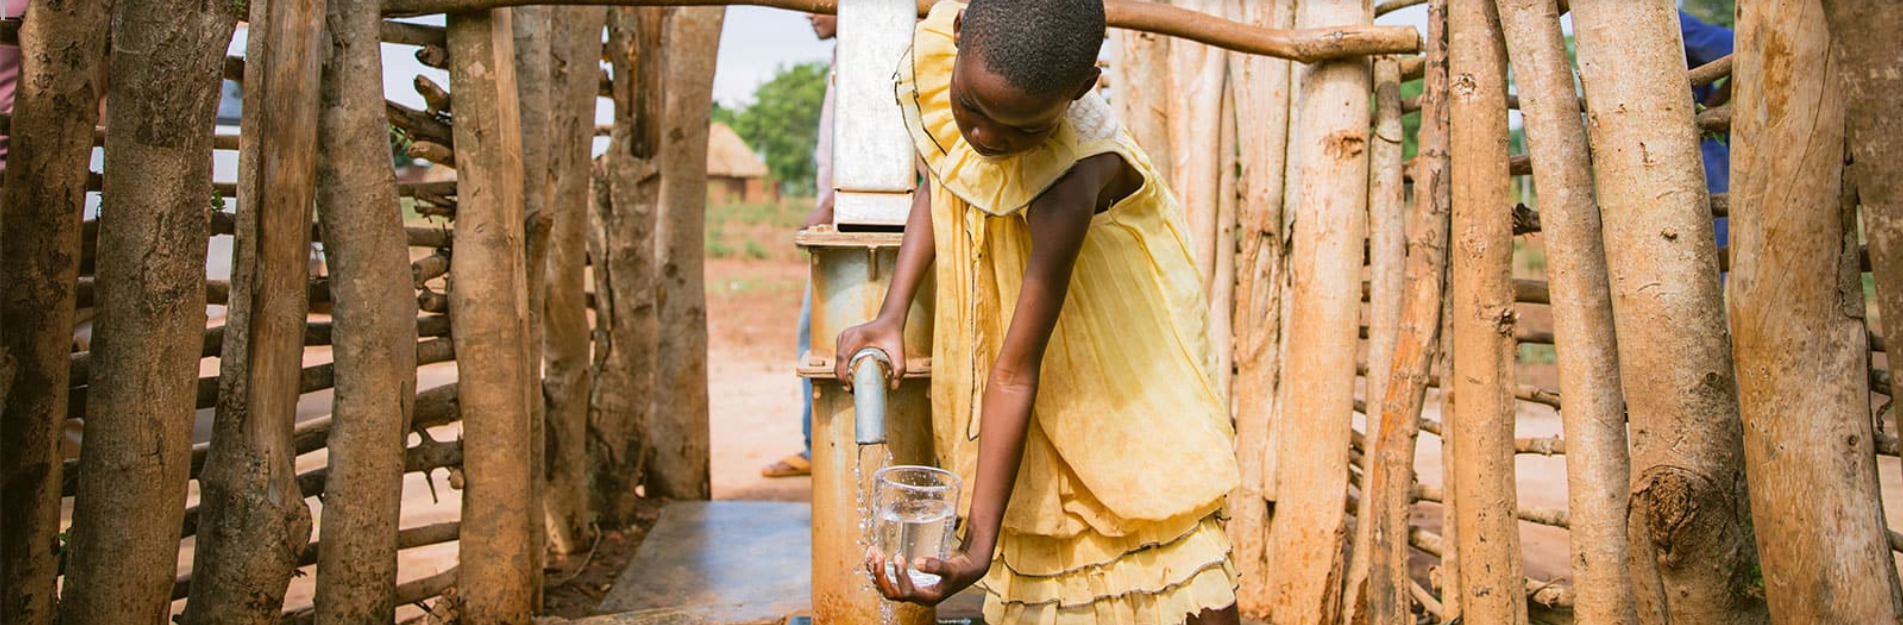 Fresh water brought to those in need.